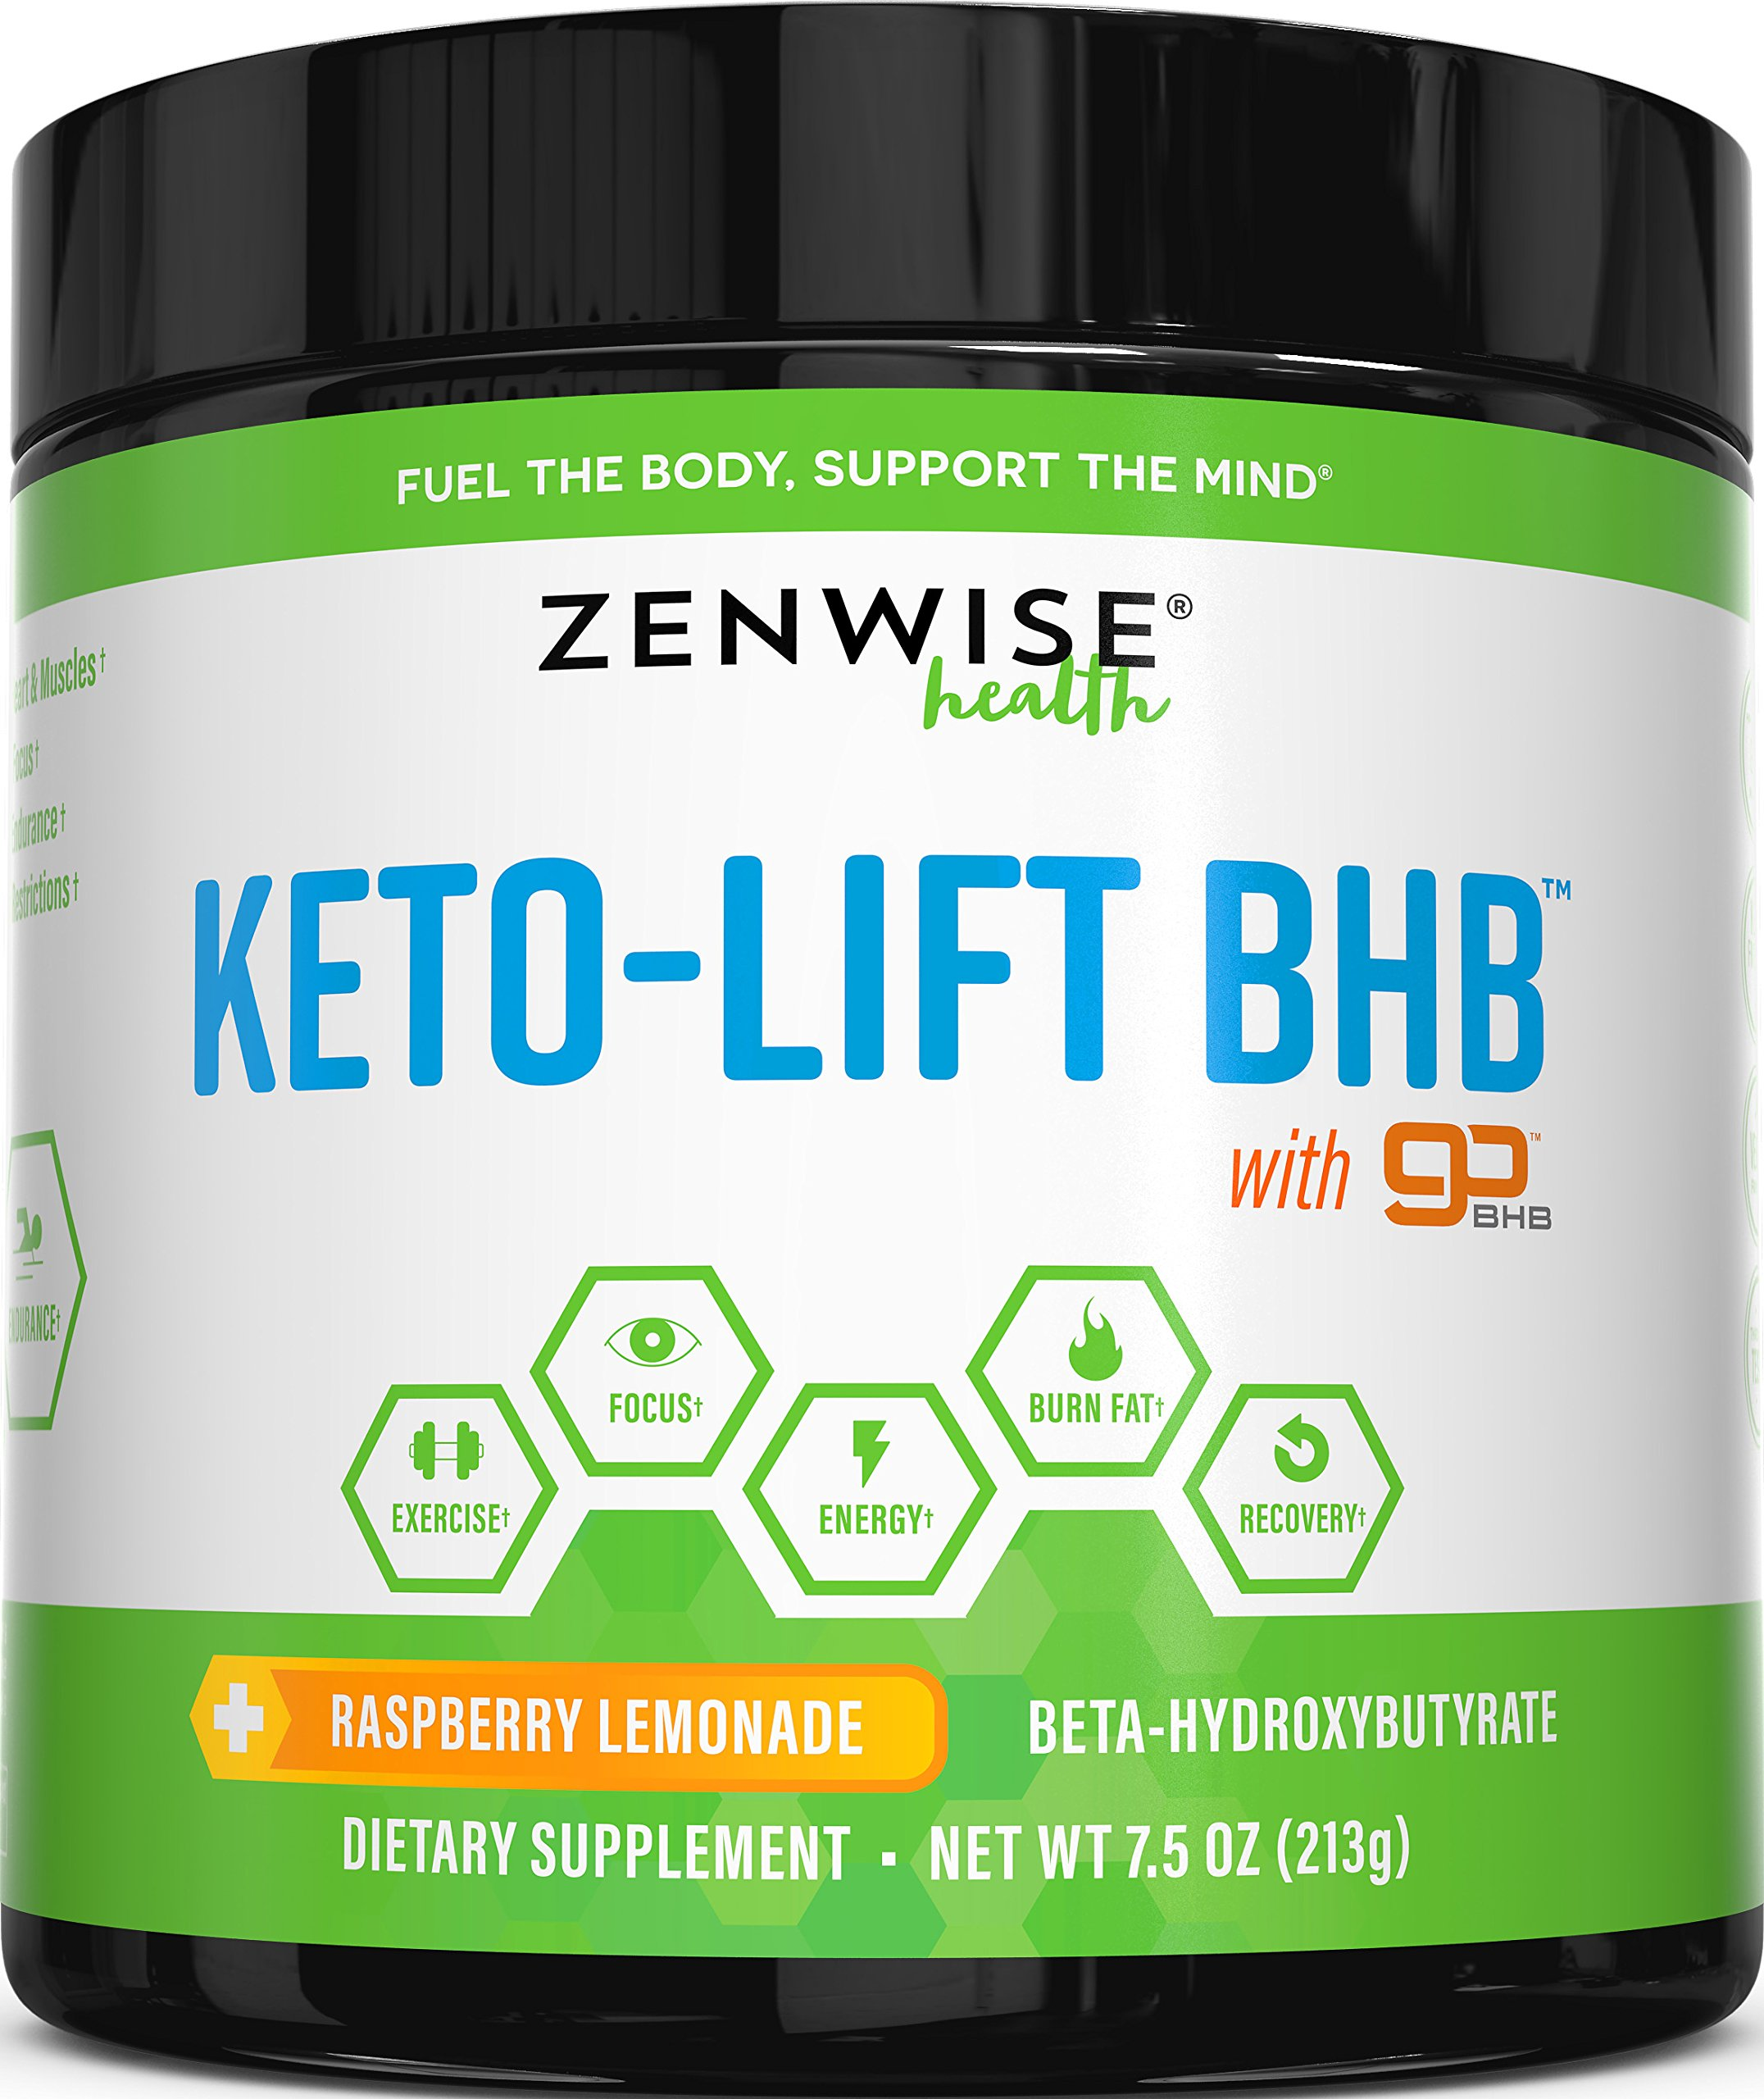 Keto BHB Salts Supplement with goBHB - Beta Hydroxybutyrate Exogenous Ketones to Achieve Perfect Ketosis - Energy Boost for Workouts & Focus + Weight Loss & Fat Burn - Raspberry Lemonade - 7.5 OZ by Zenwise Health